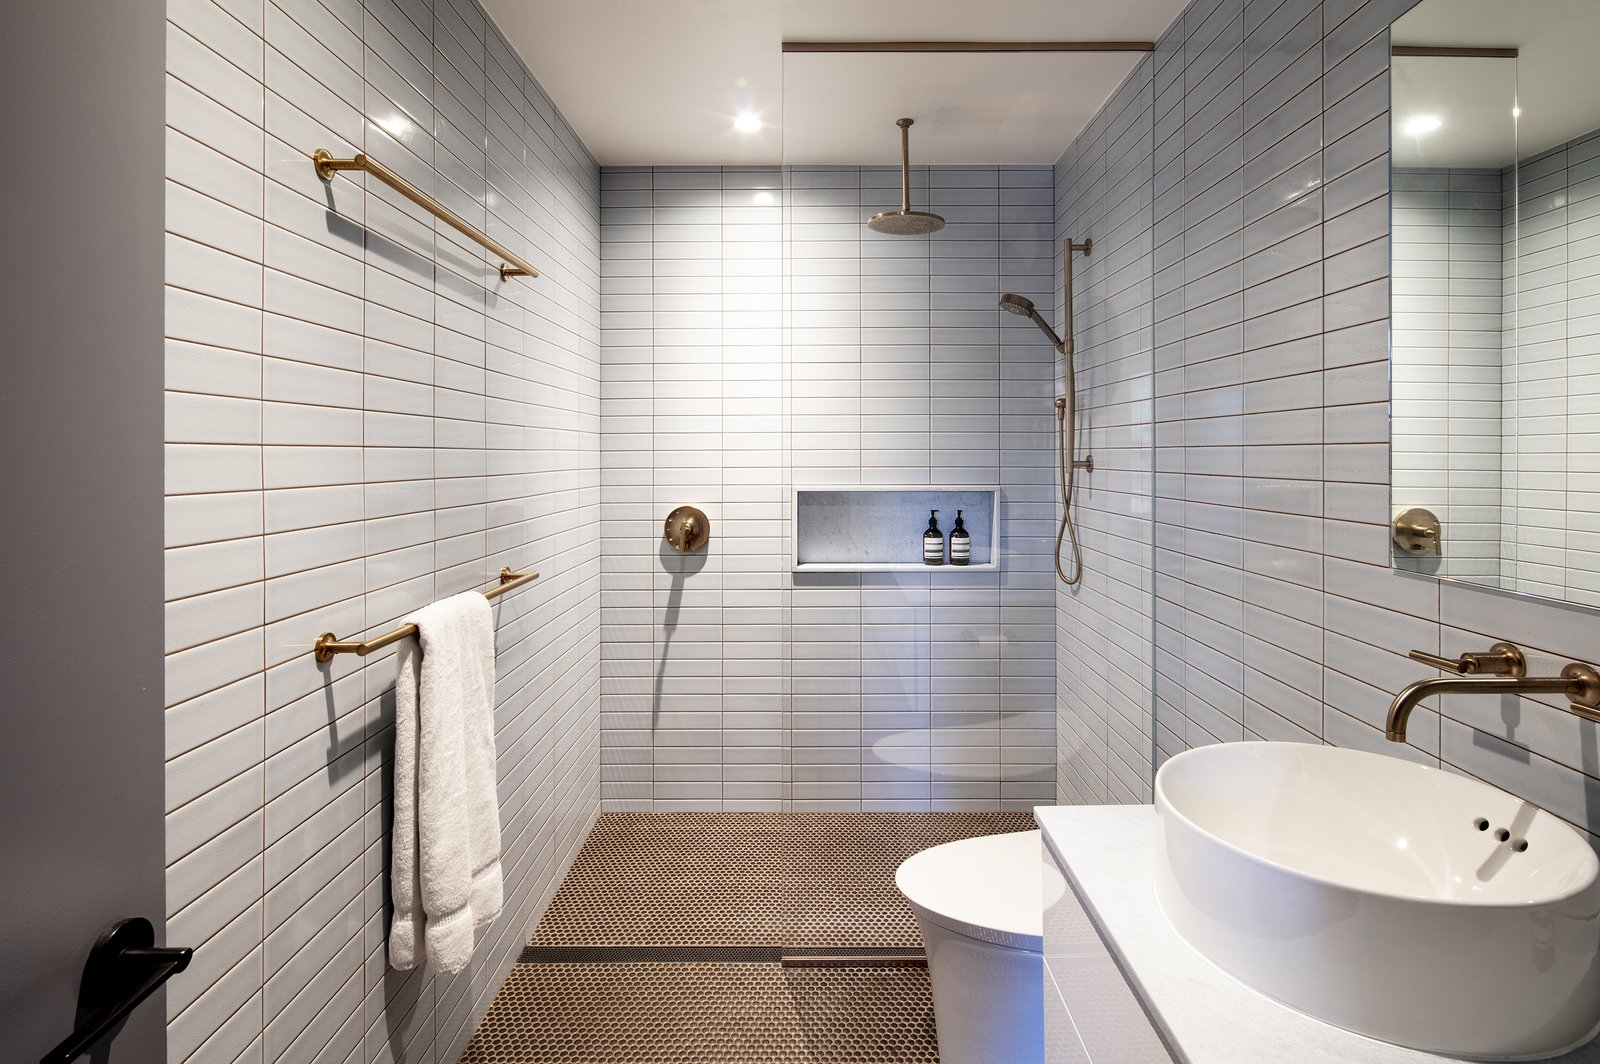 Bath, Ceramic Tile, Stone, Ceramic Tile, Recessed, Open, Wall, Vessel, and One Piece SECOND FLOOR - MASTER BATHROOM Photo © Ashok Sinha  Bath Stone Recessed One Piece Photos from Bed-Stuy Townhouse